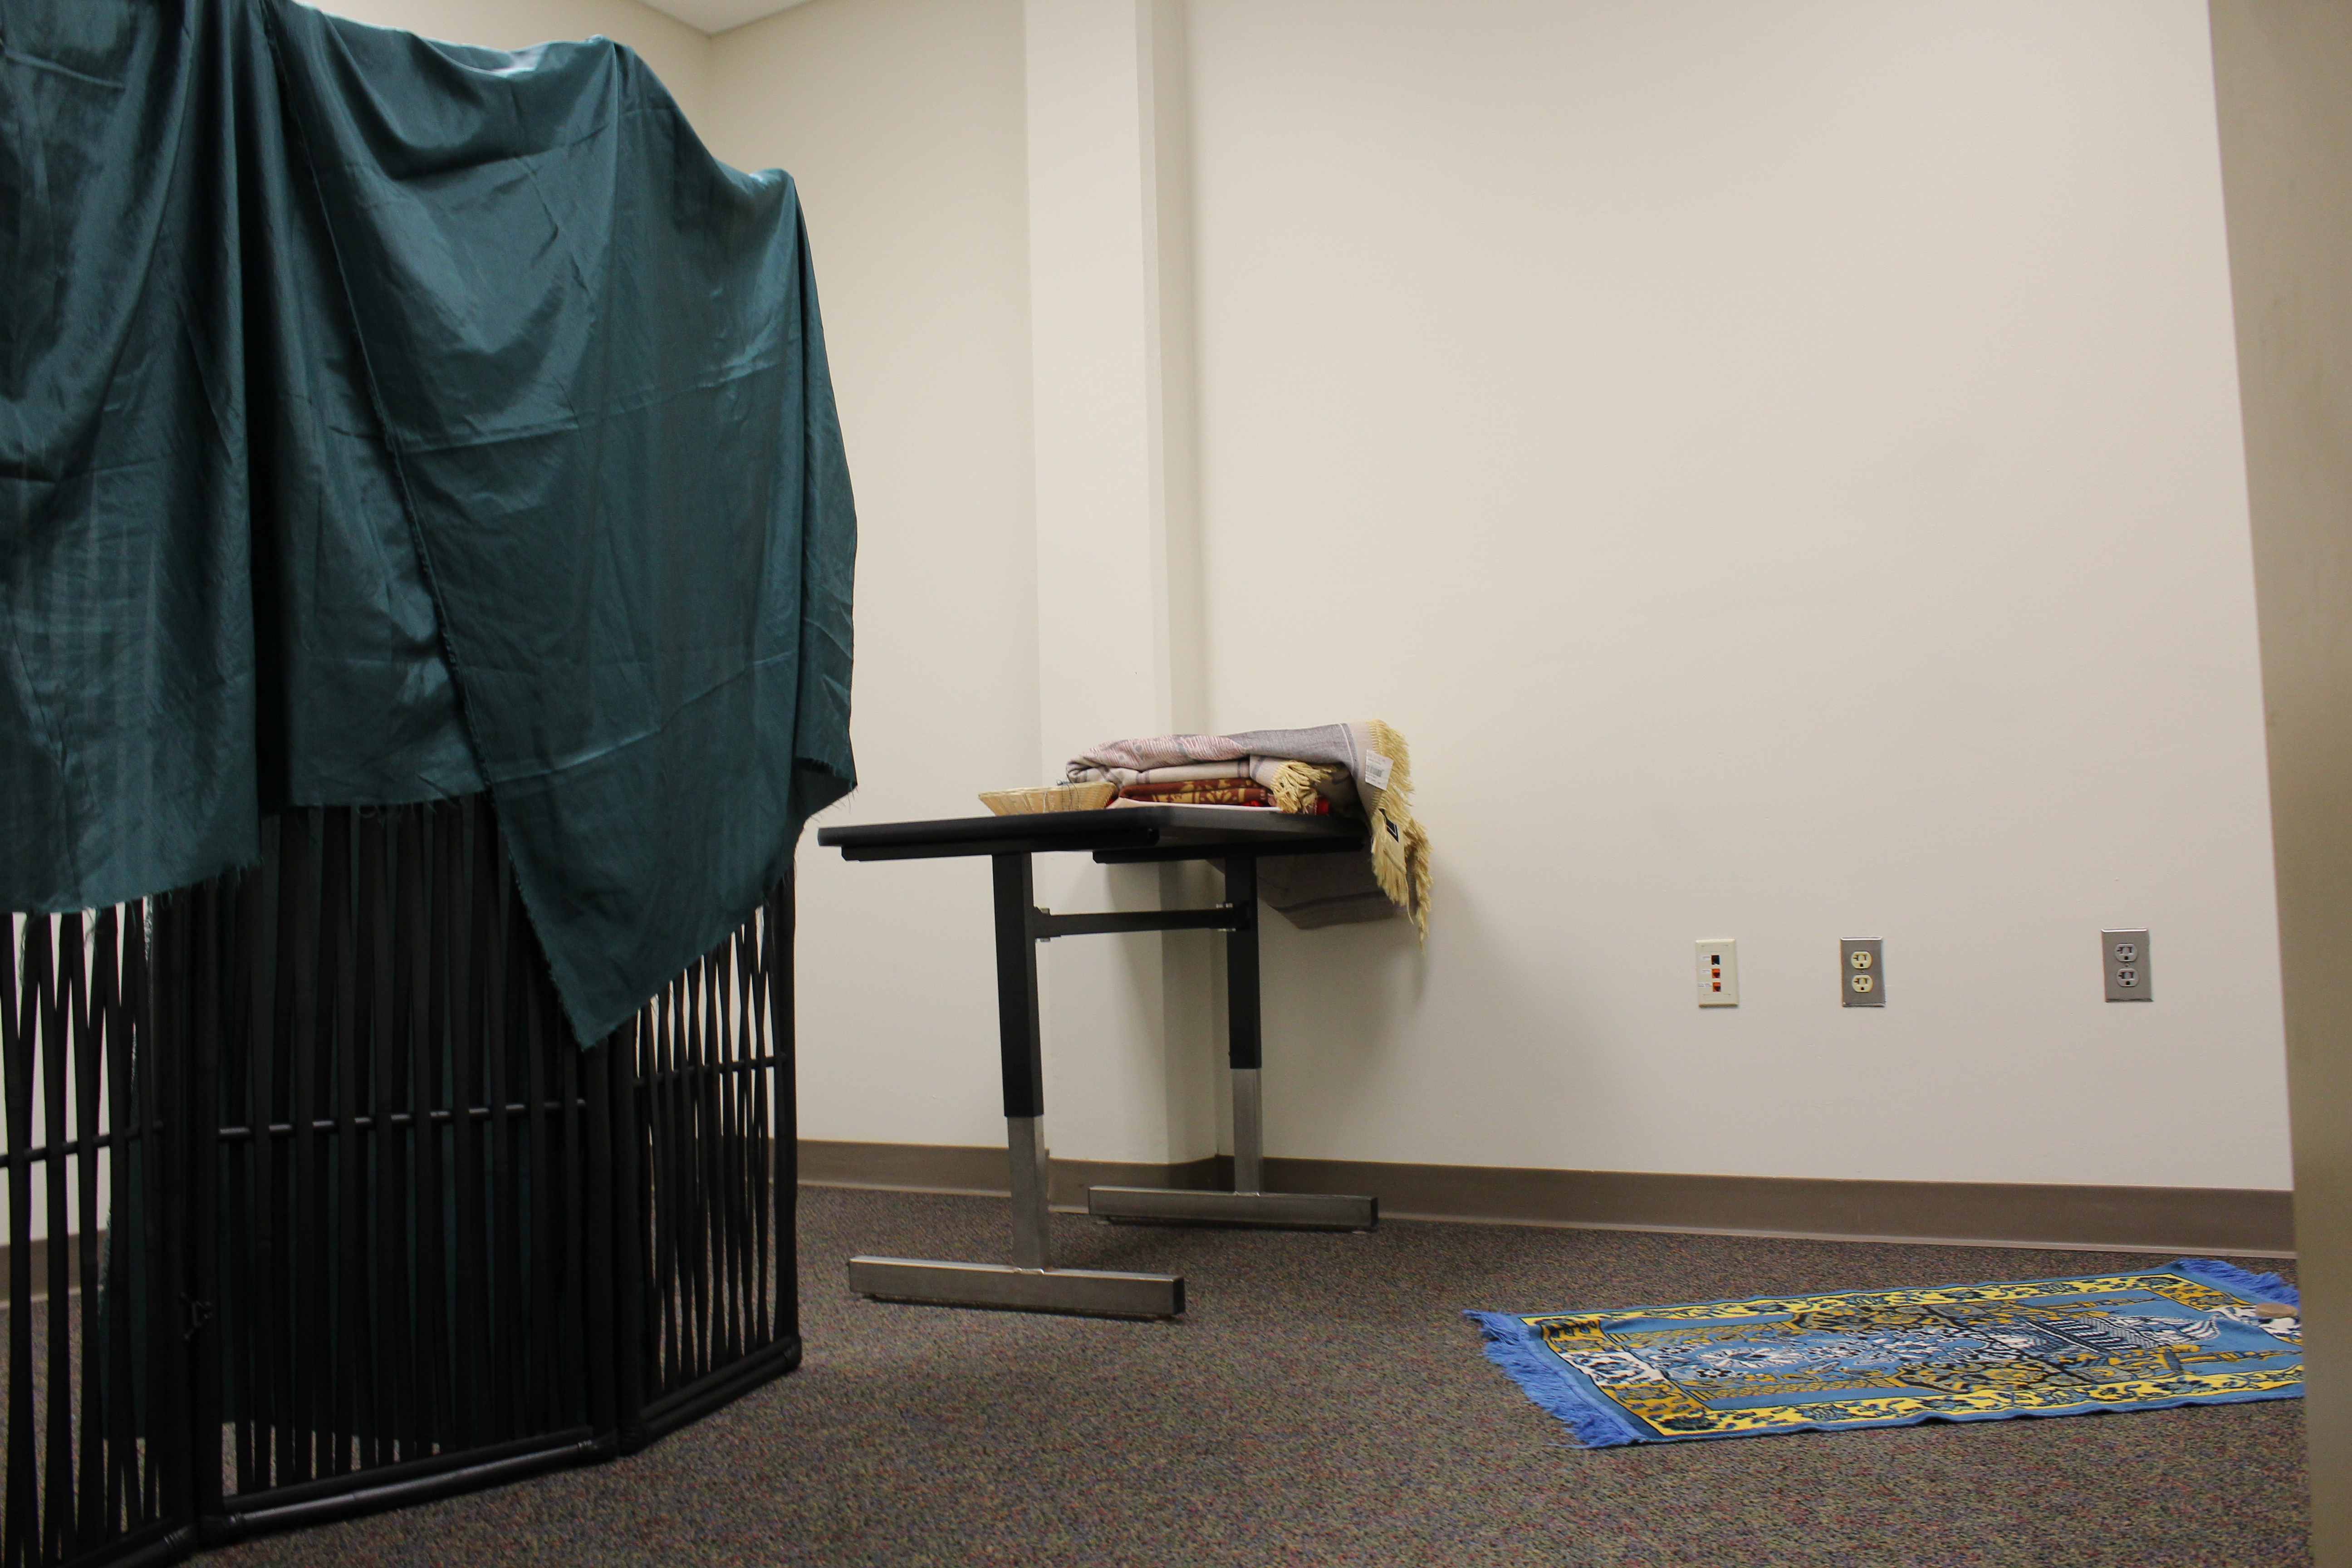 A simple room with a room divider draped with fabric on the left. A small table holds prayer mats and one is rolled out on the floor.